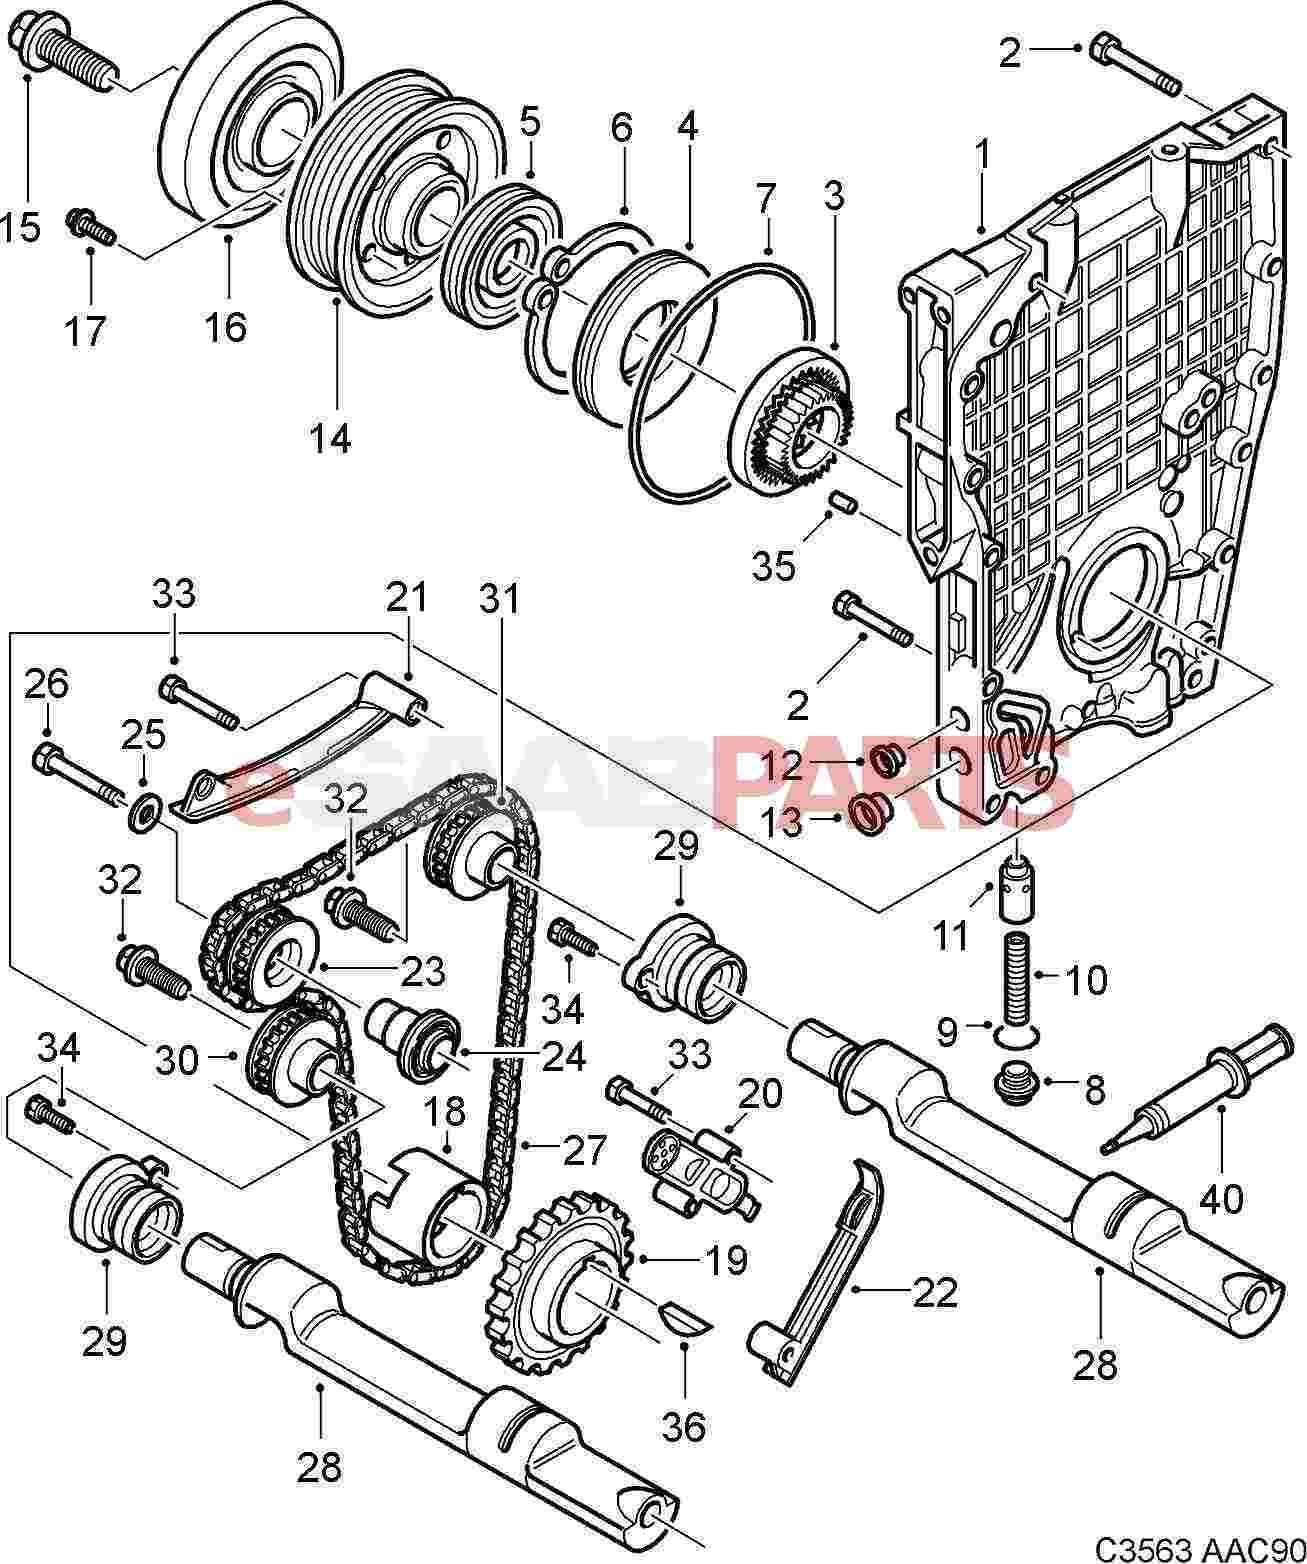 hight resolution of saab 900 engine diagram wiring diagram rh monedasvirtual com saab 900 transmission saab 900 turbo engine diagram